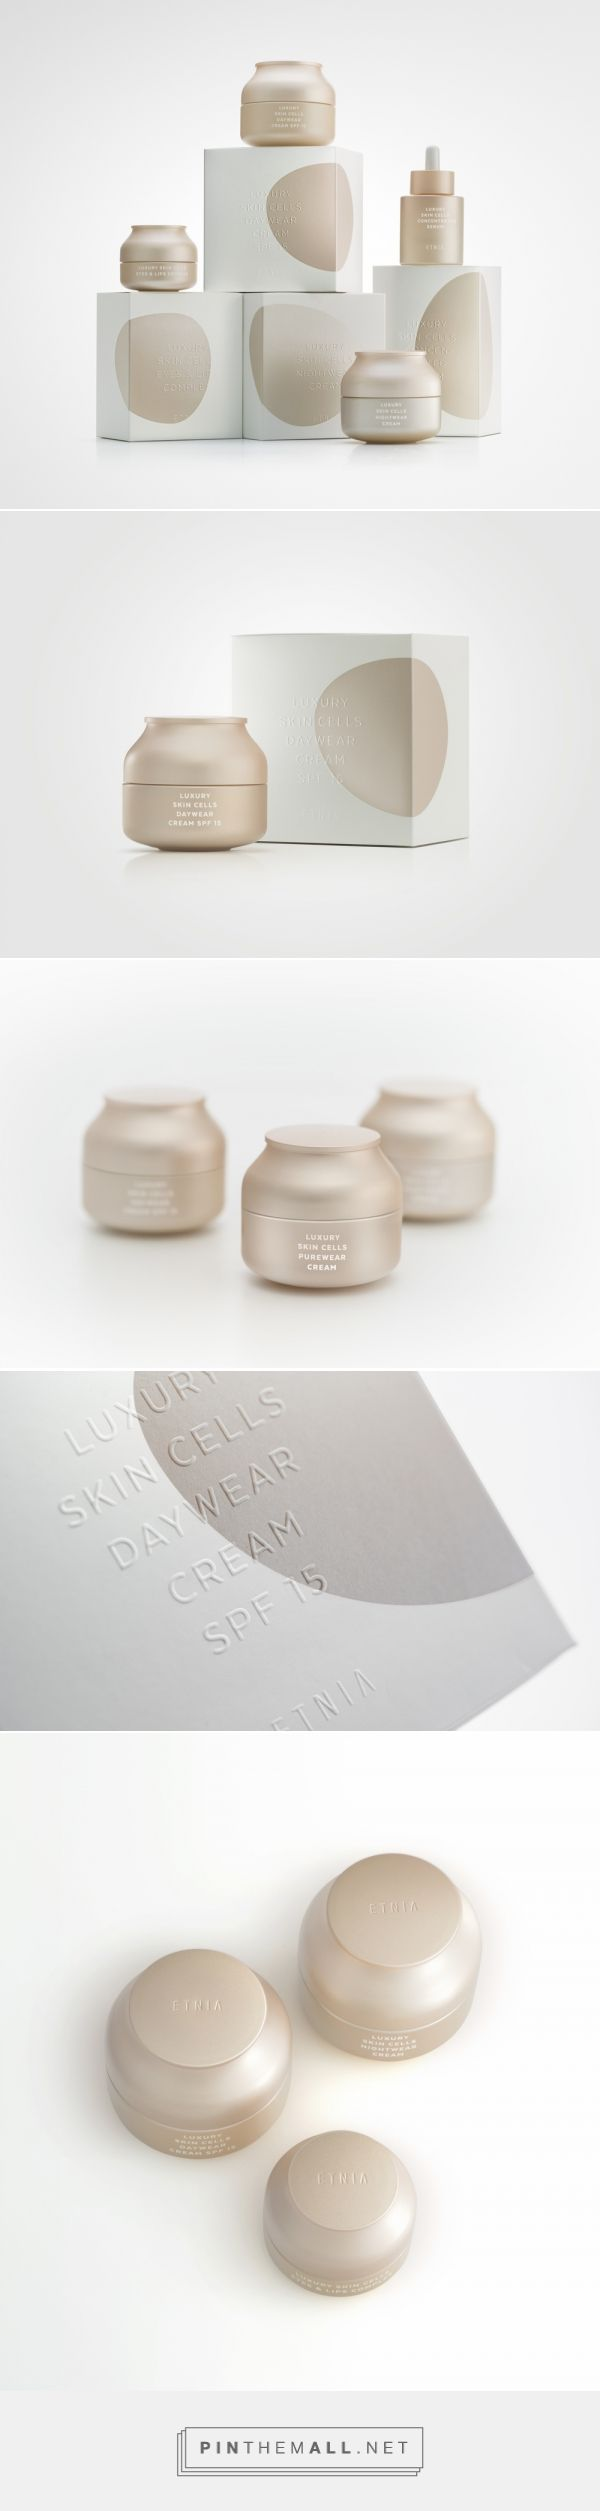 Luxury Skin Cells — The Dieline - Branding & Packaging - created via https://pinthemall.net